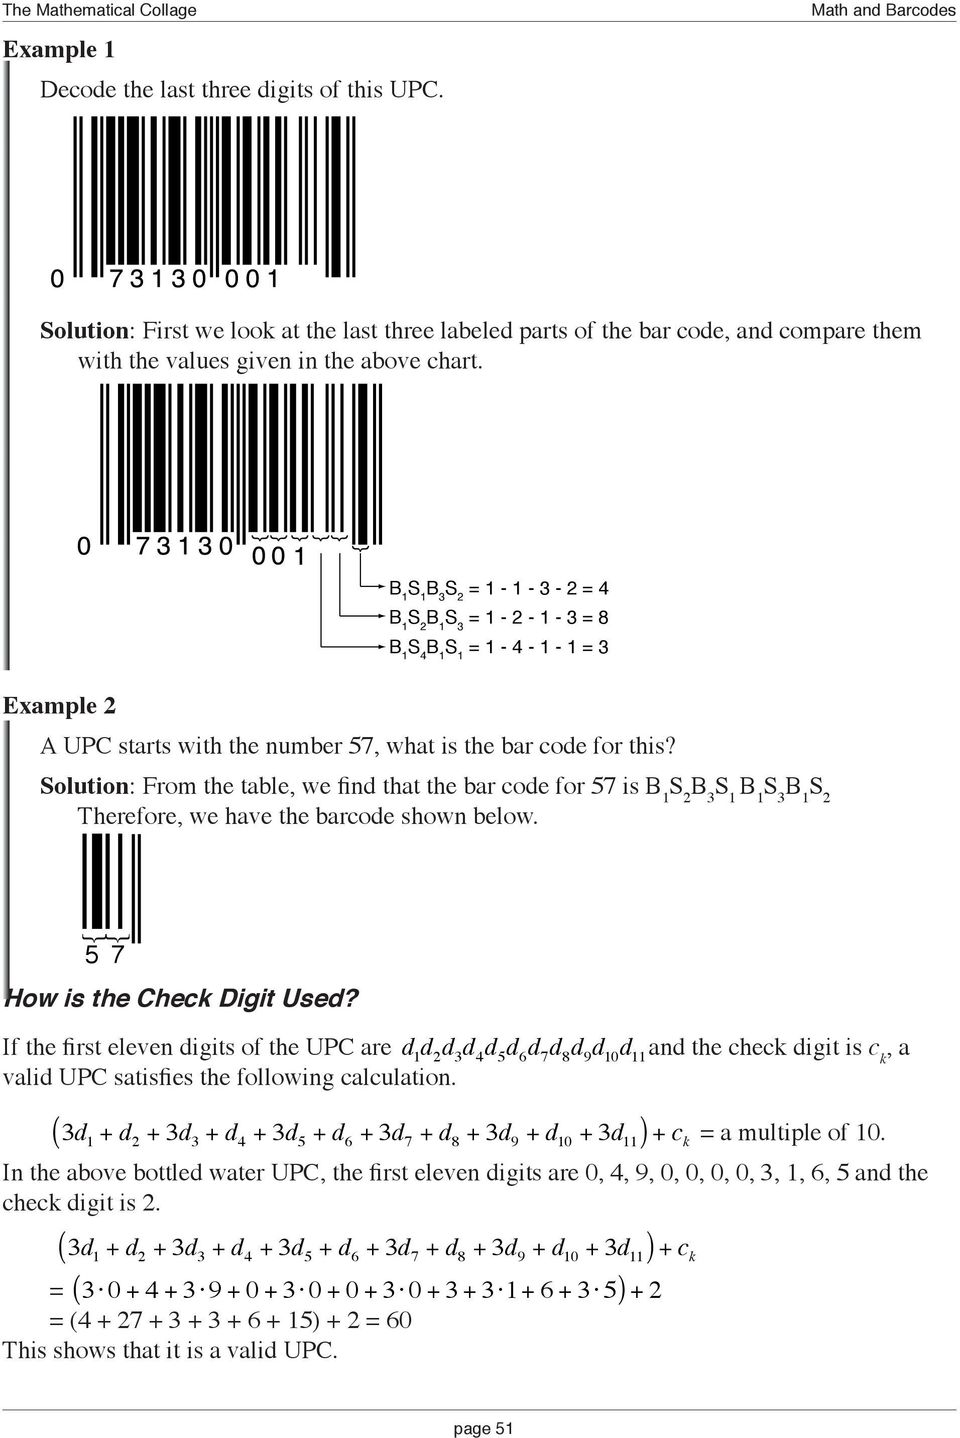 MATHEMATICAL EXCURSIONS Math and Bar Codes - PDF